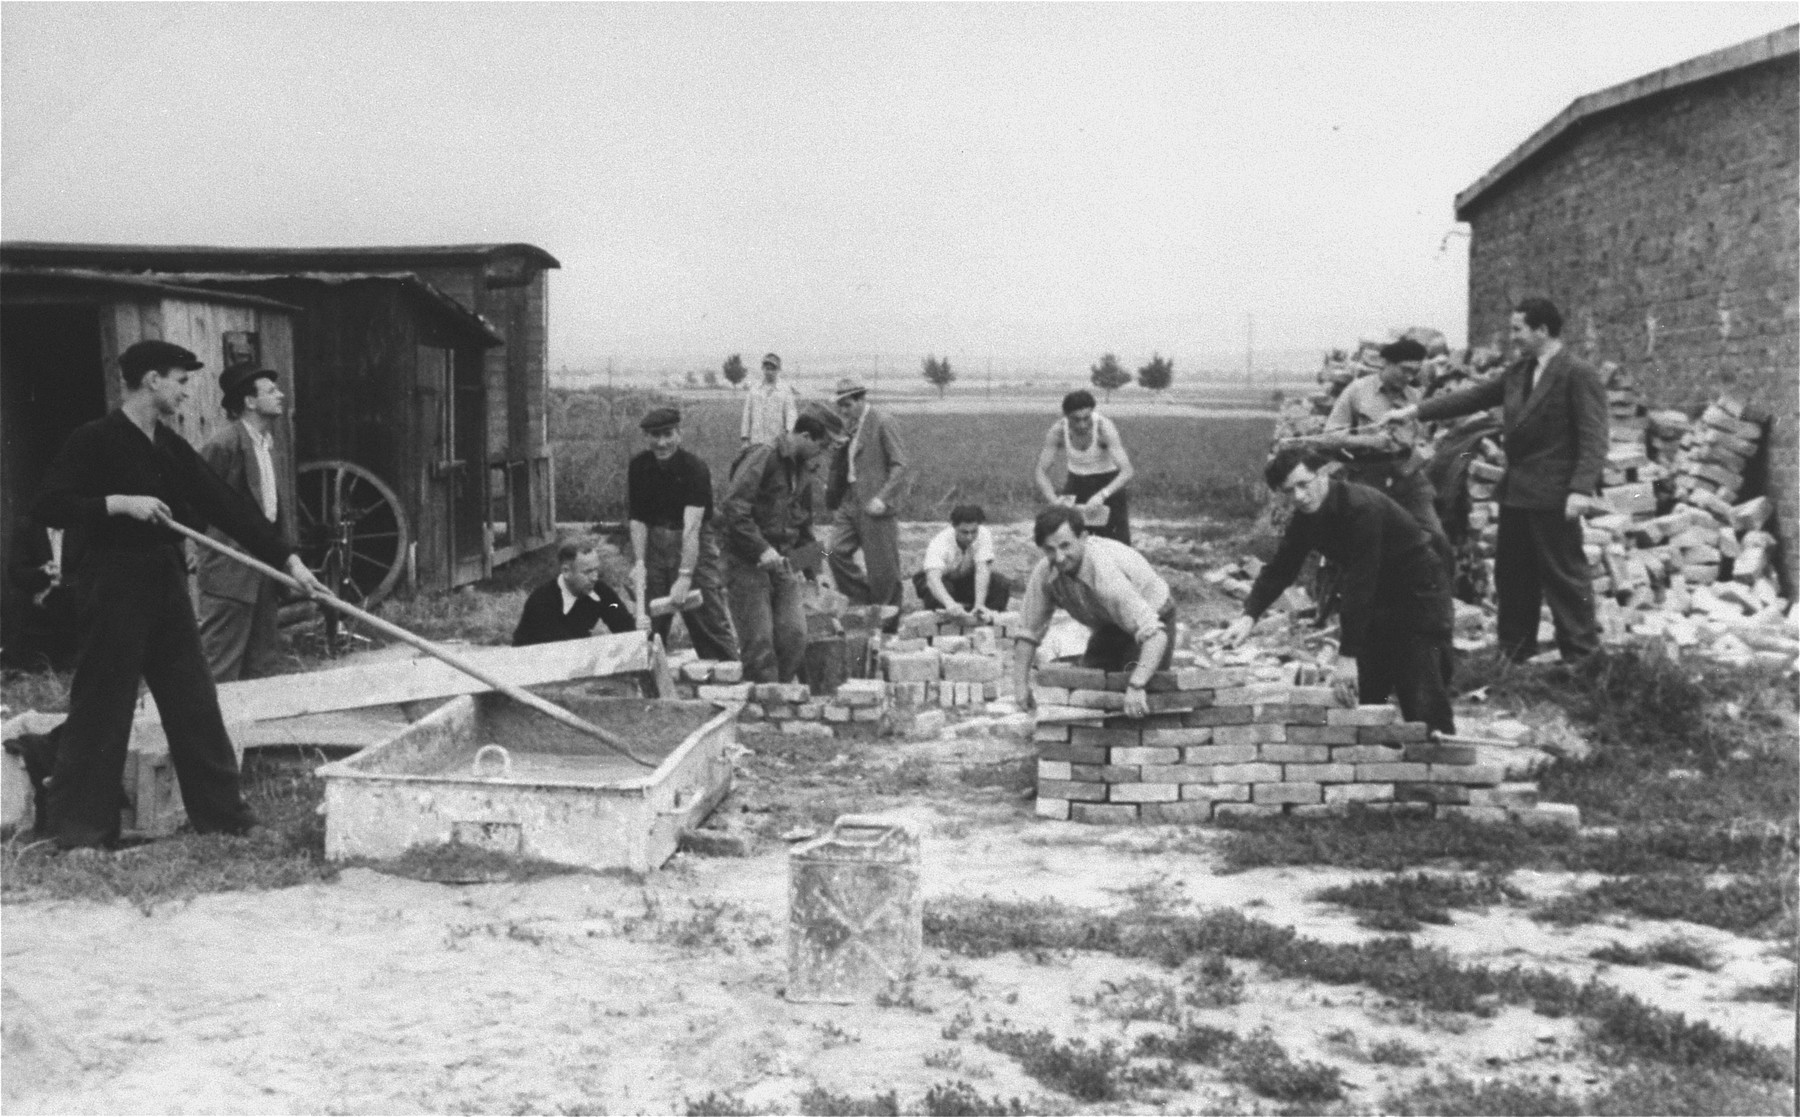 Men construct a brick wall in an ORT sponsored vocational school in the Zeilsheim displaced persons' camp.